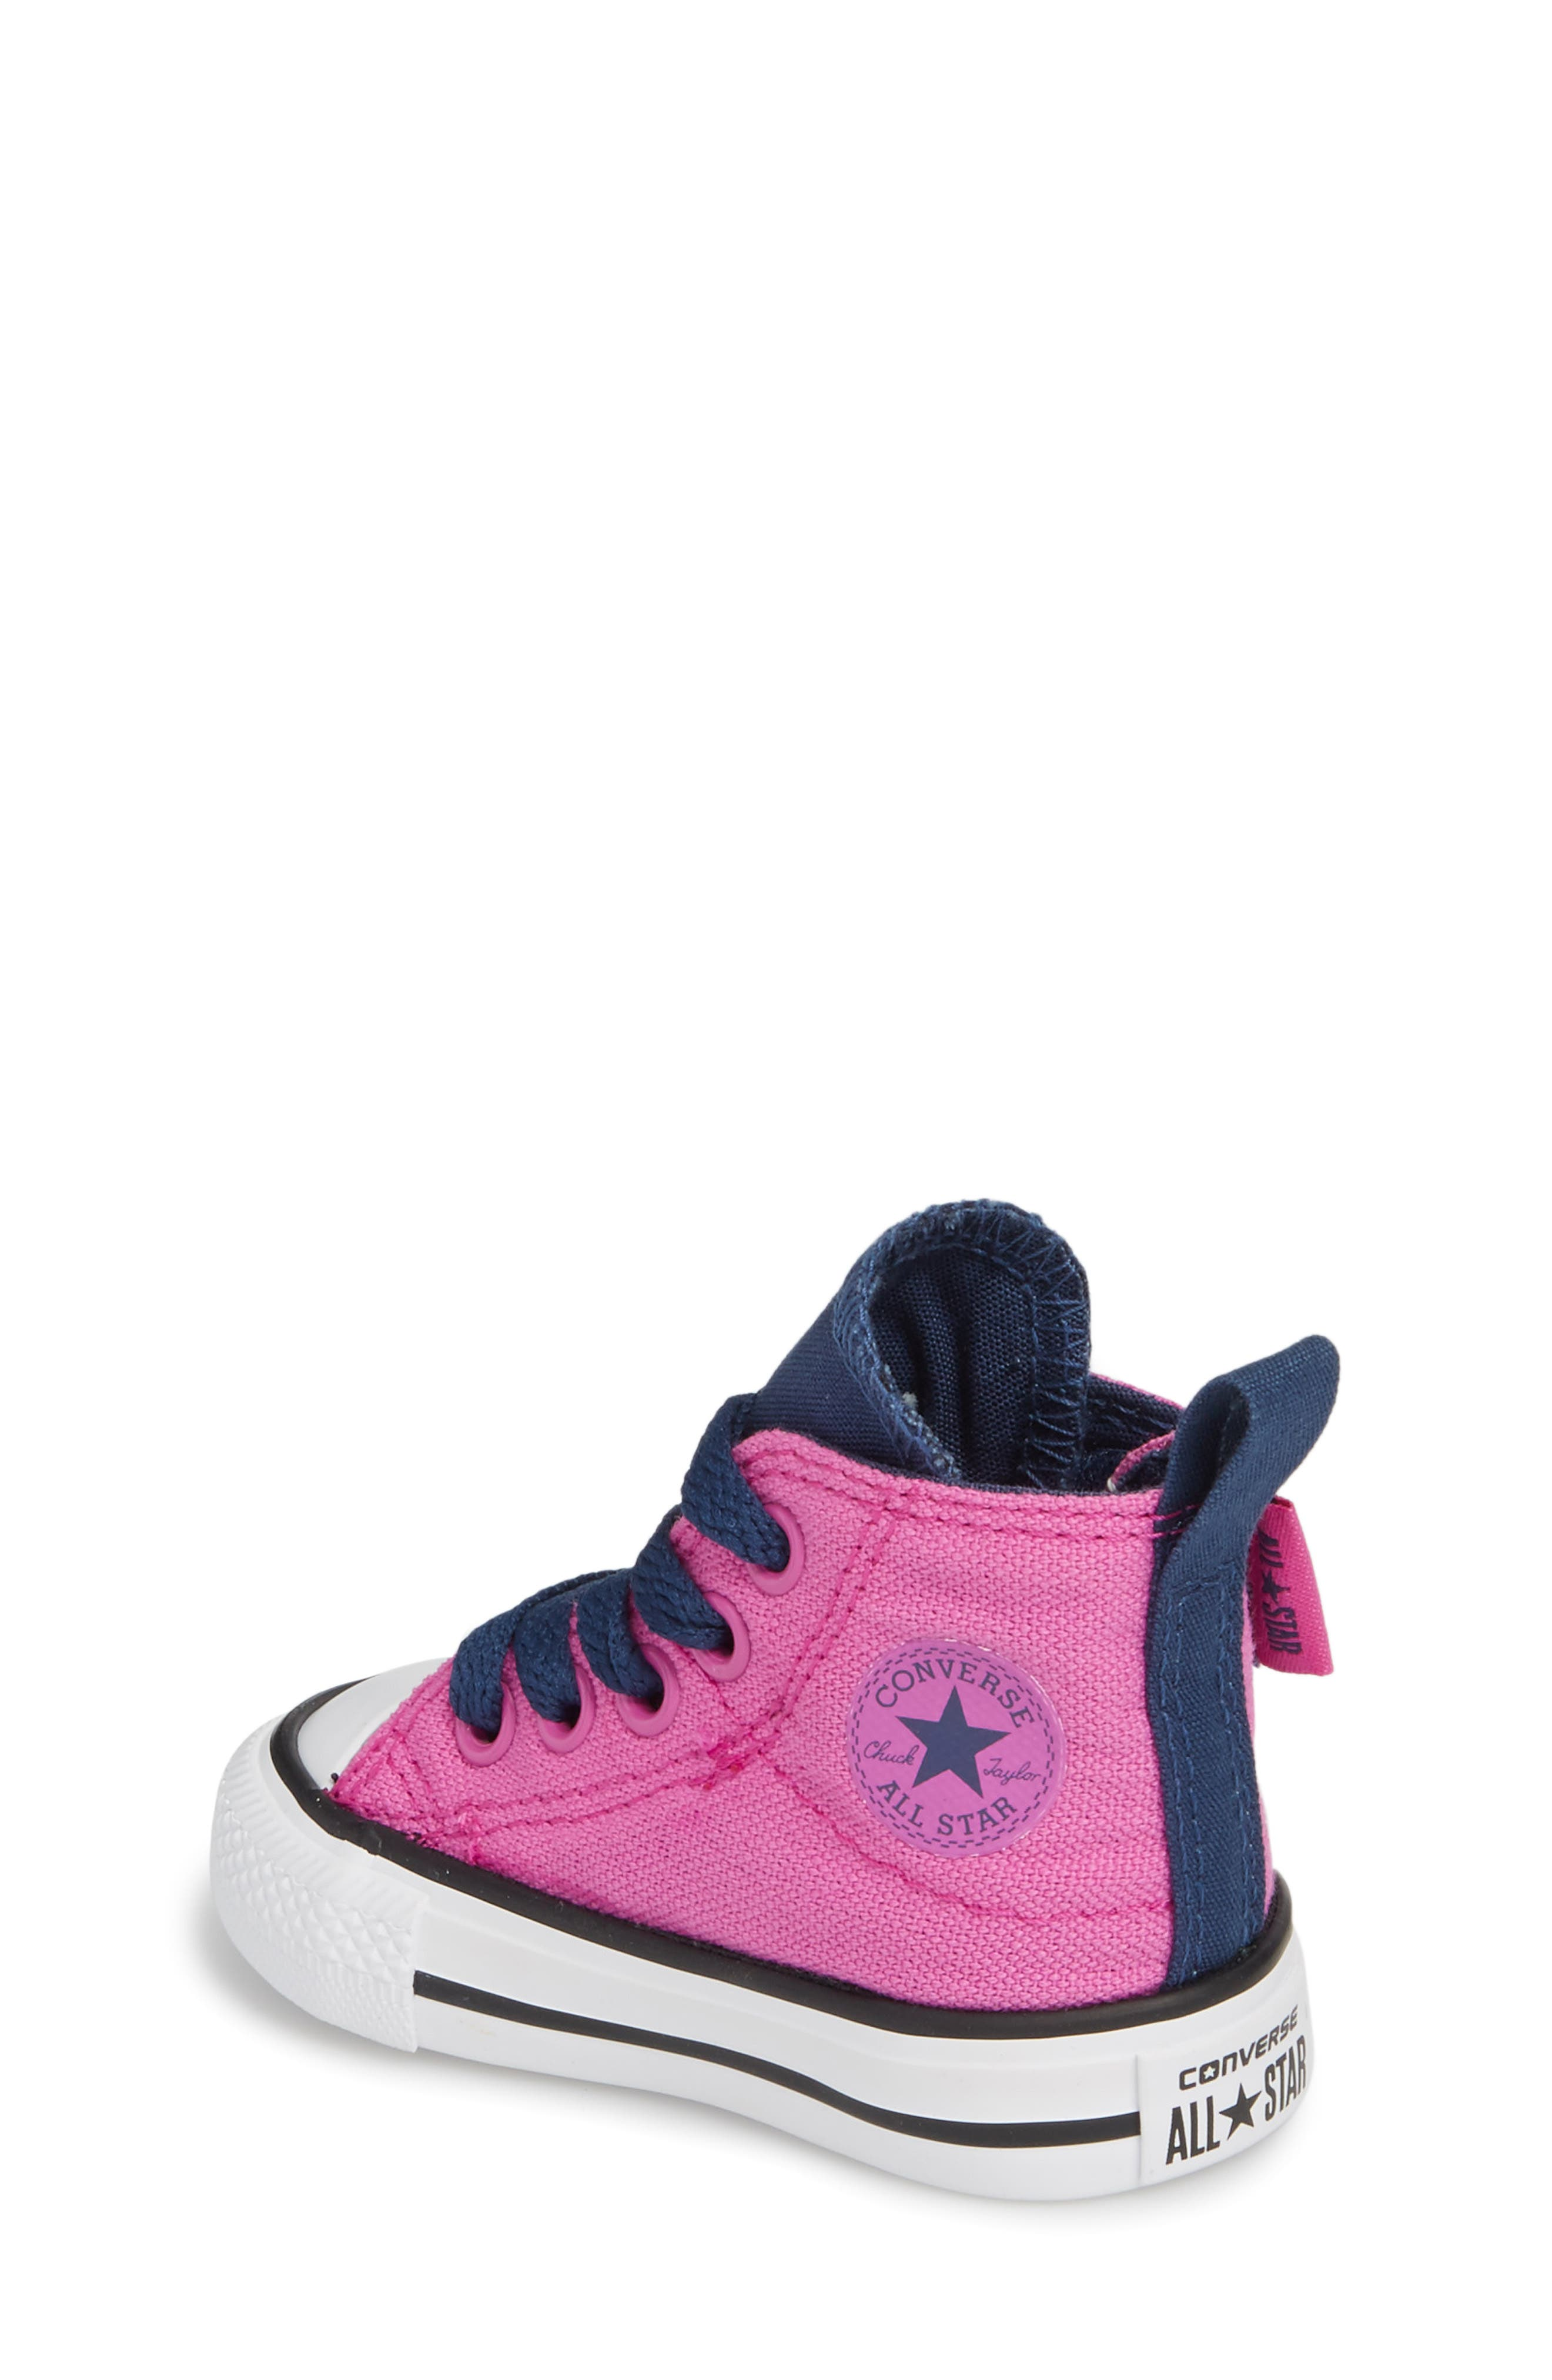 Chuck Taylor<sup>®</sup> All Star<sup>®</sup> 'Simple Step' High Top Sneaker,                             Alternate thumbnail 6, color,